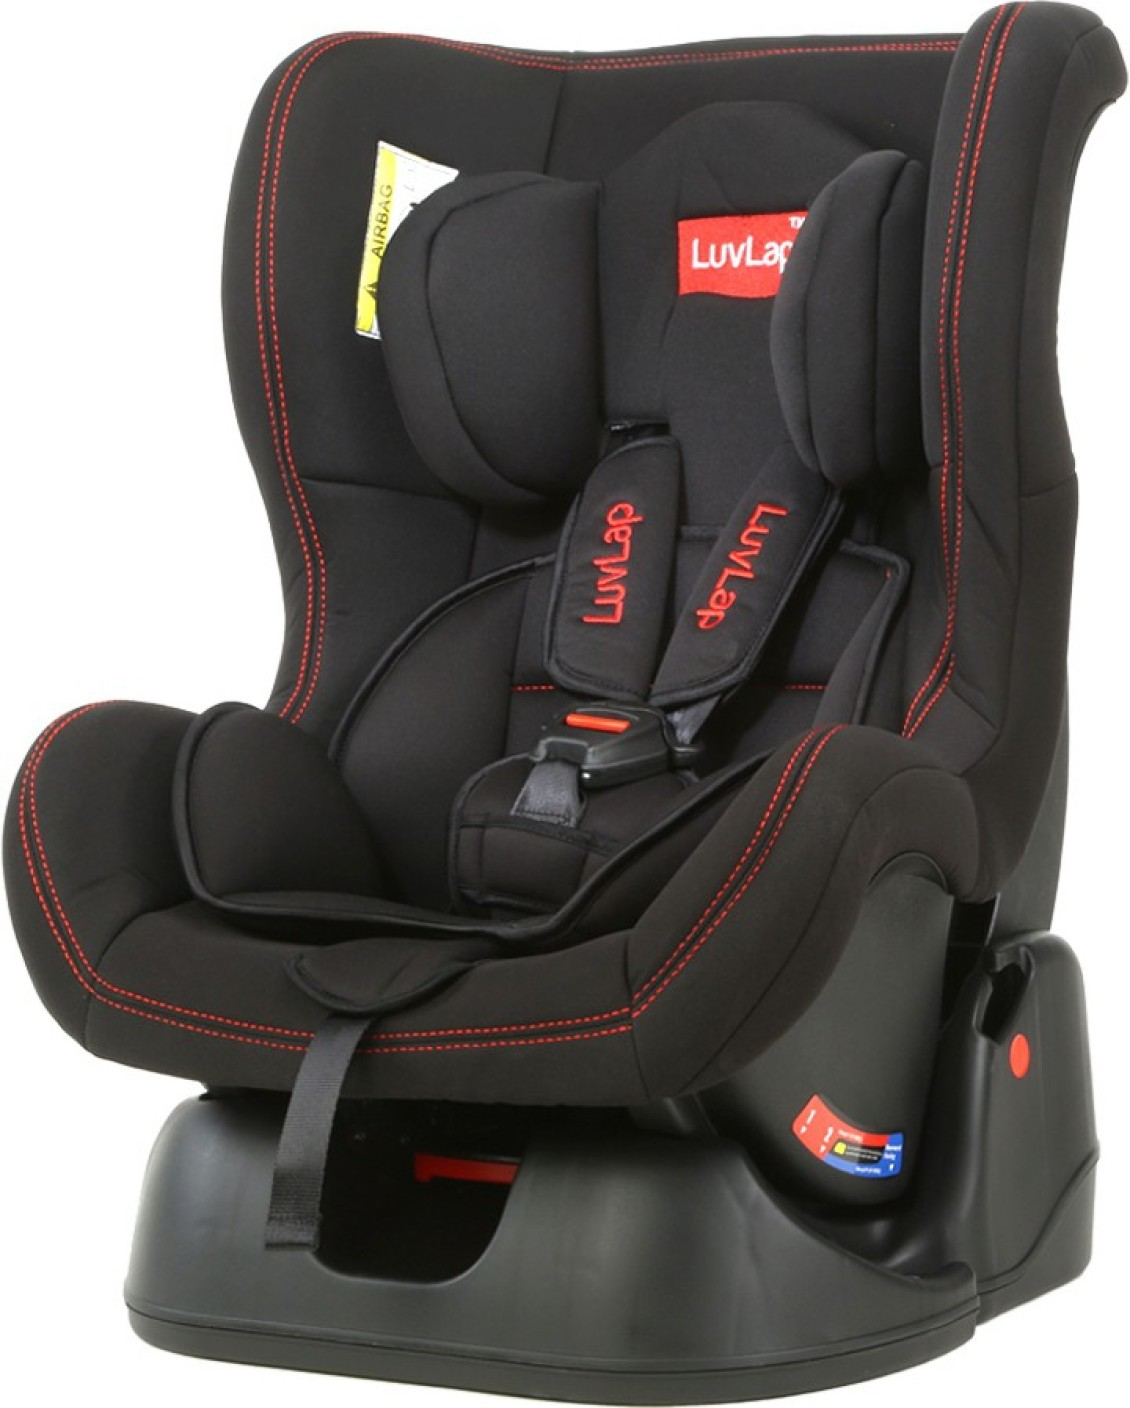 Infant Car Seat Safety Ratings Uk